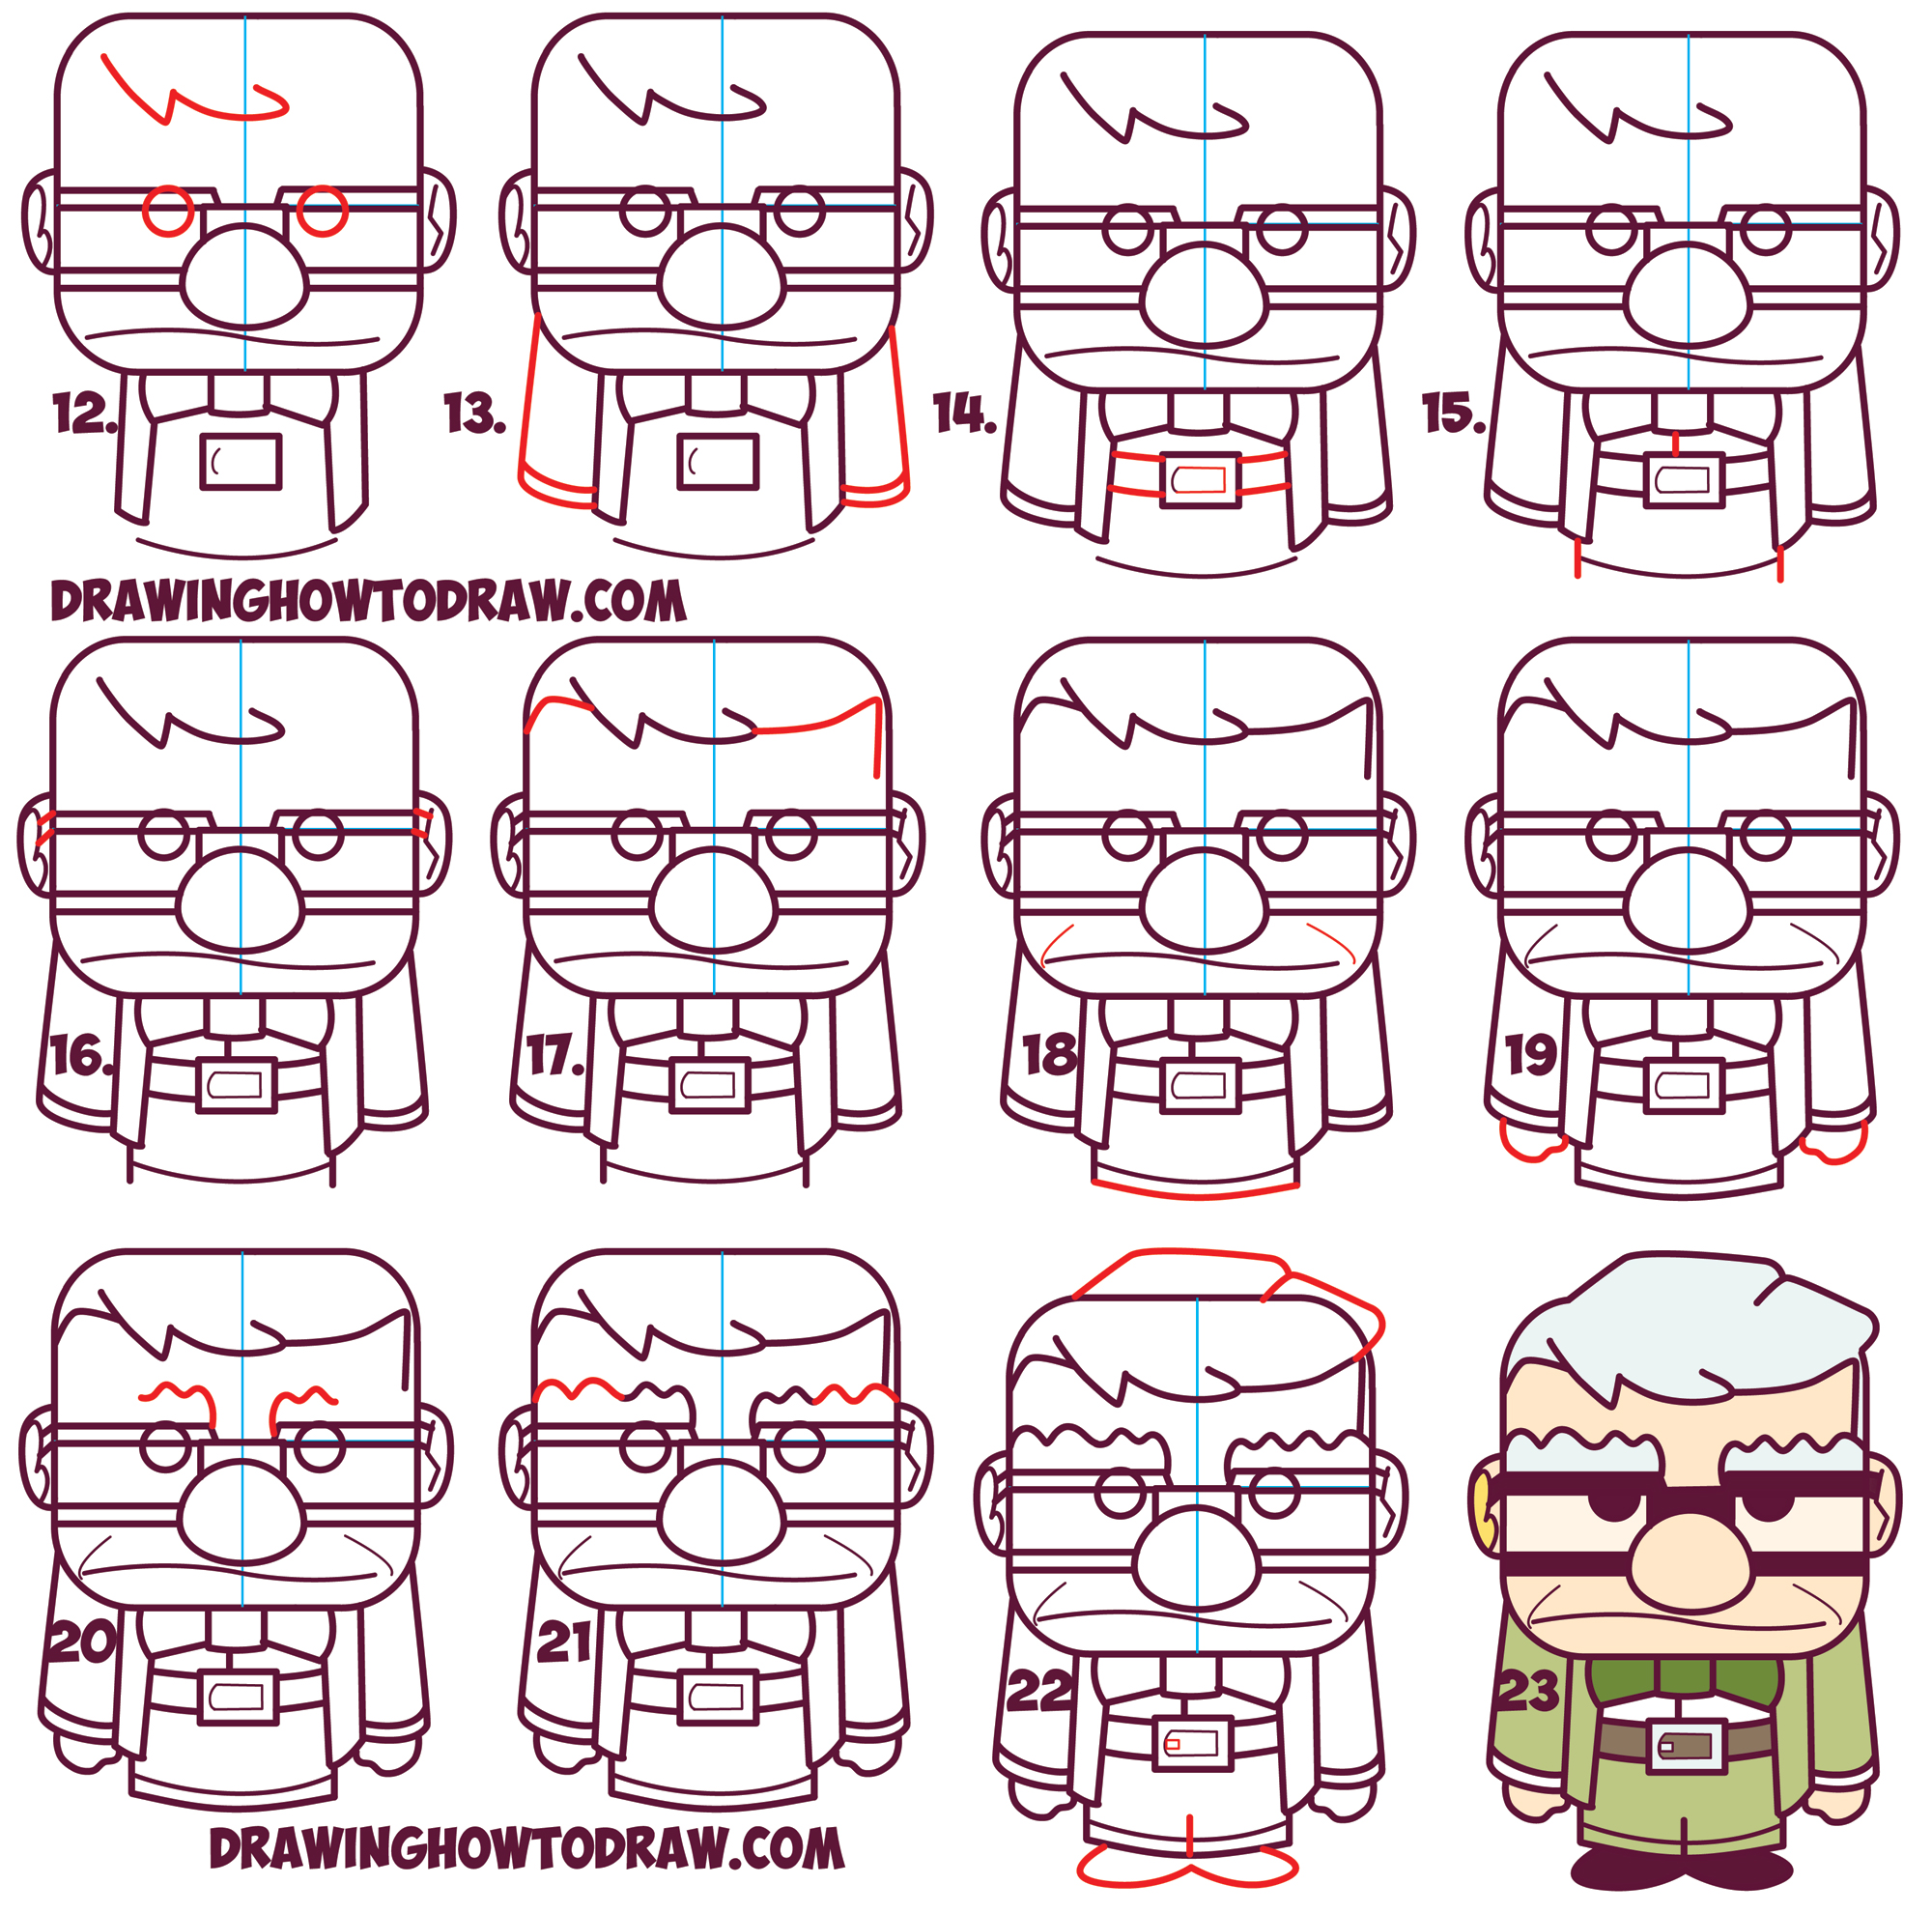 How to Draw Carl Fredricksen the Old Man from Pixars Up Cute